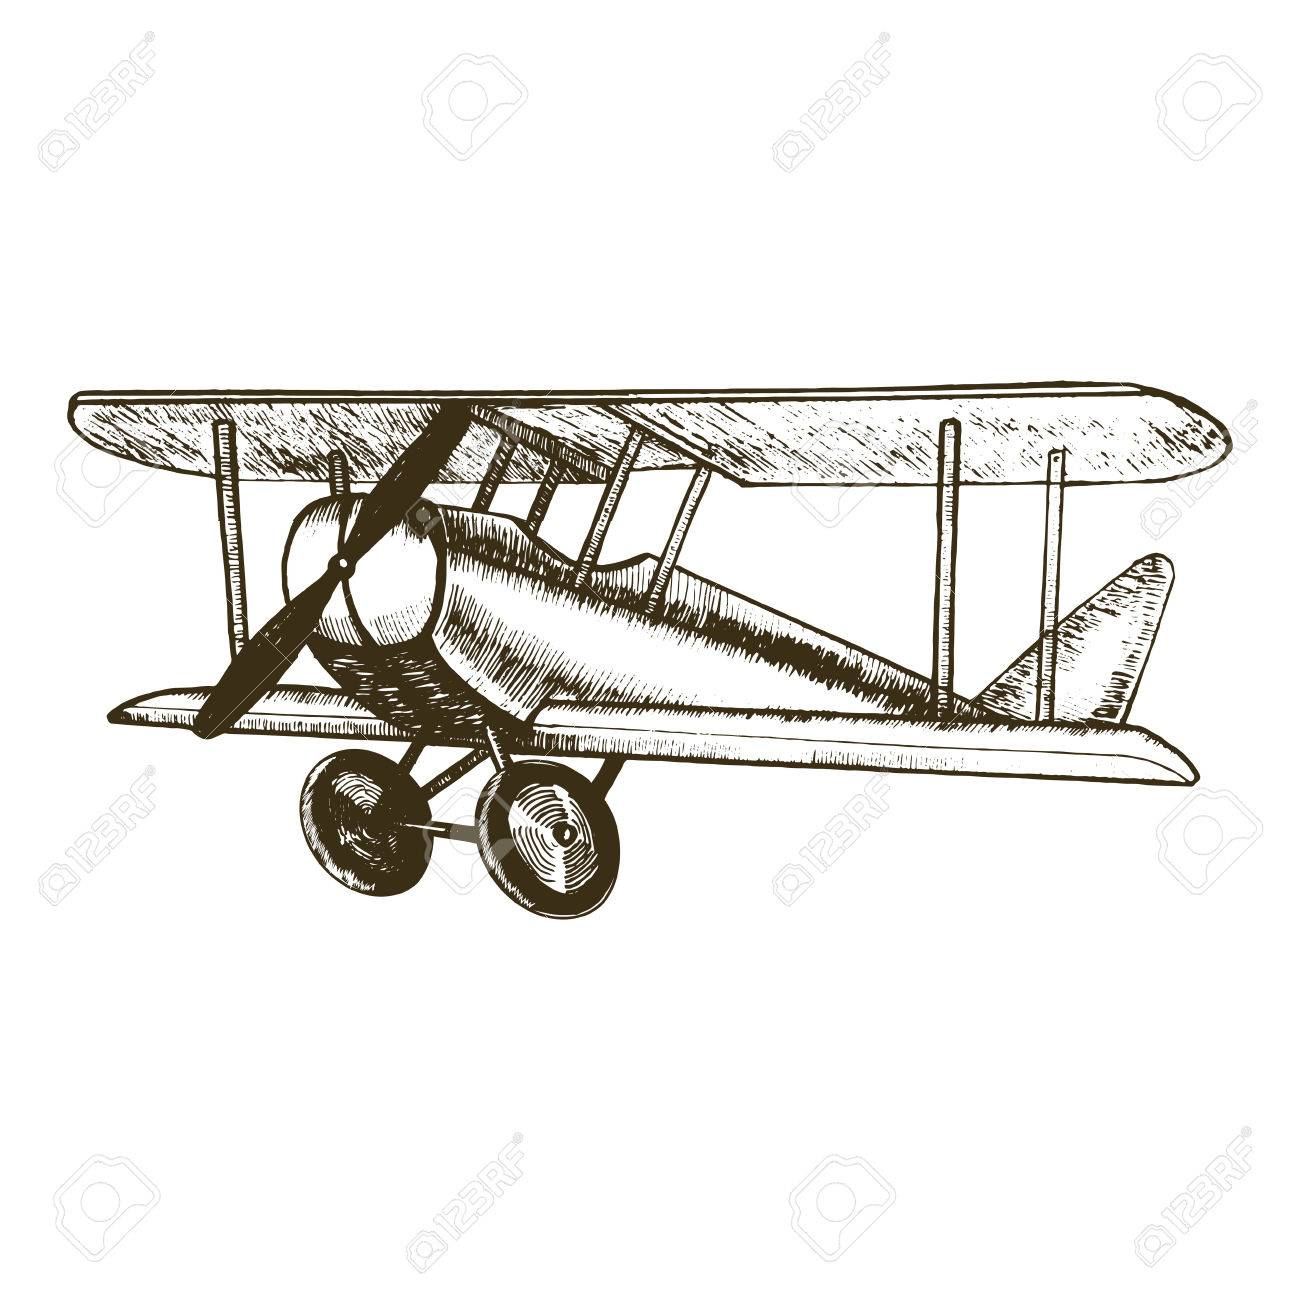 1300x1300 Retro Plane Hand Draw Sketch Vintage Biplane With Propeller Can